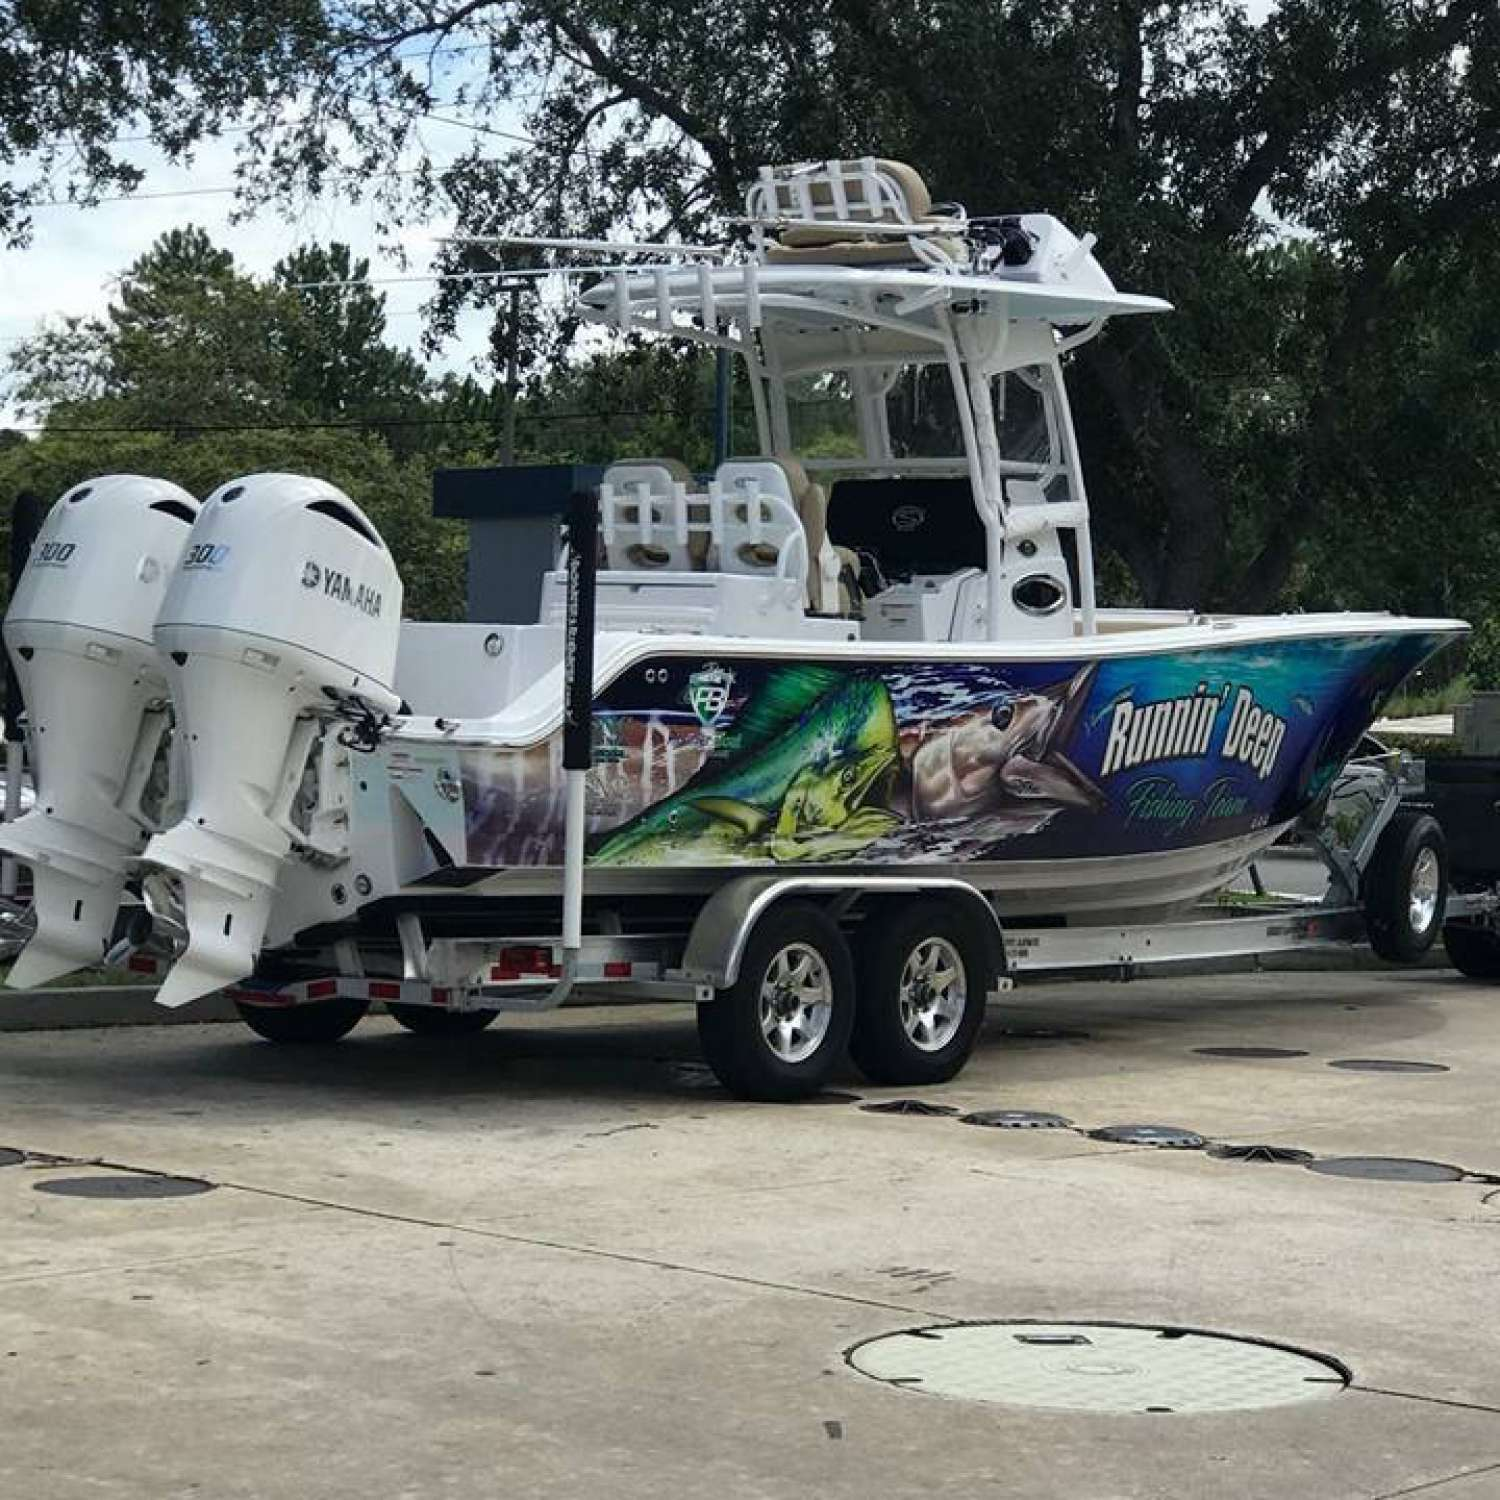 Title: Wrapped And Ready - On board their Sportsman Open 282 Center Console - Location: St. Augustine, Florida. Participating in the Photo Contest #SportsmanSeptember2017